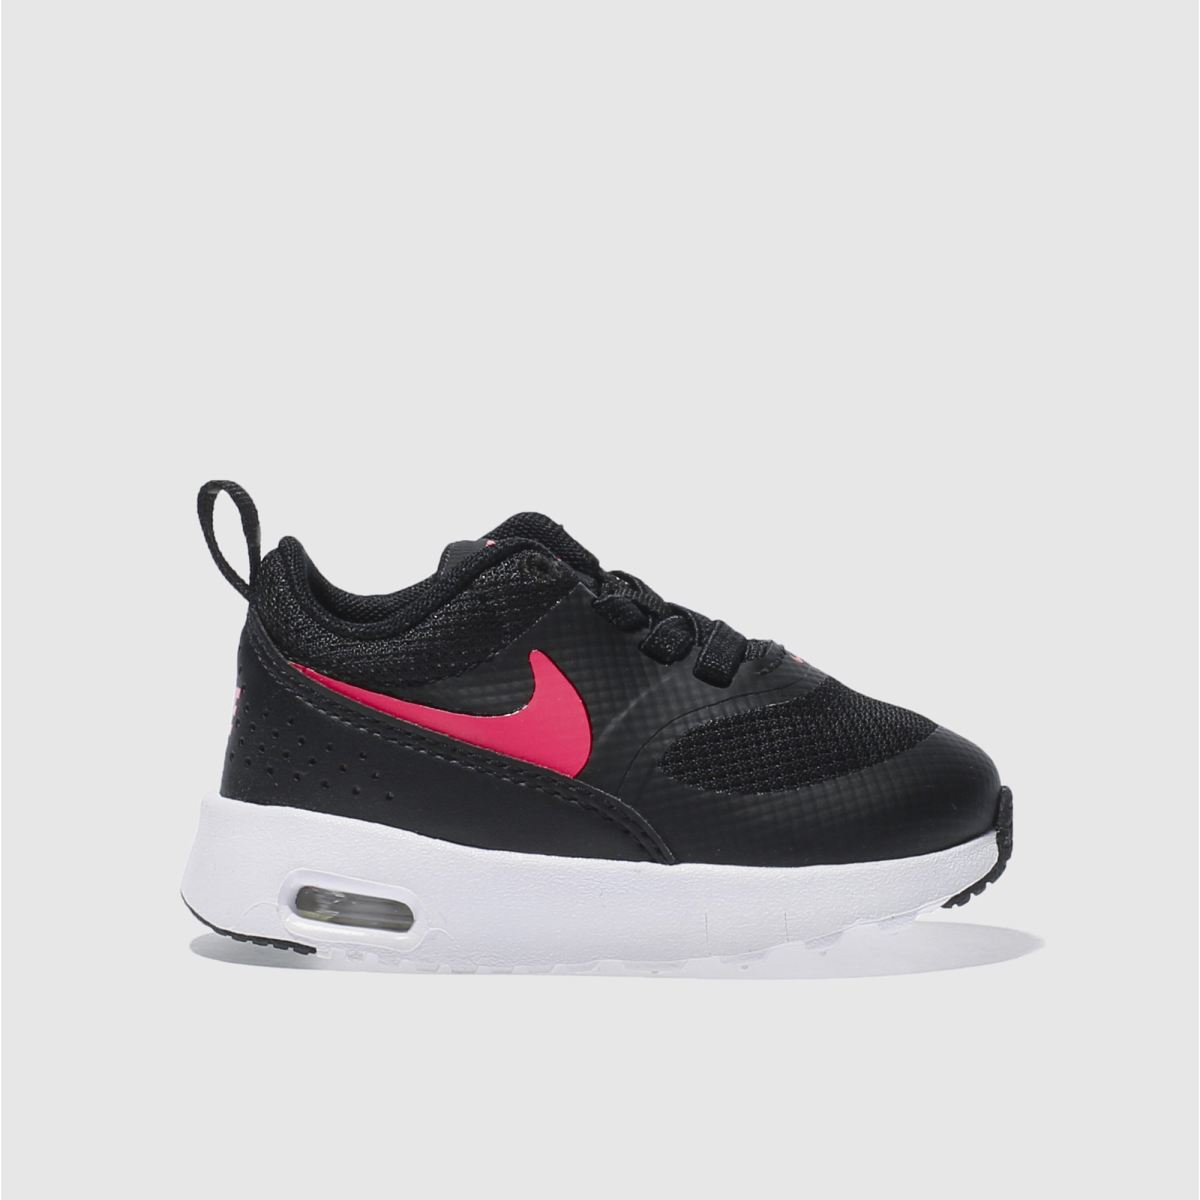 nike black air max thea Girls Toddler Trainers